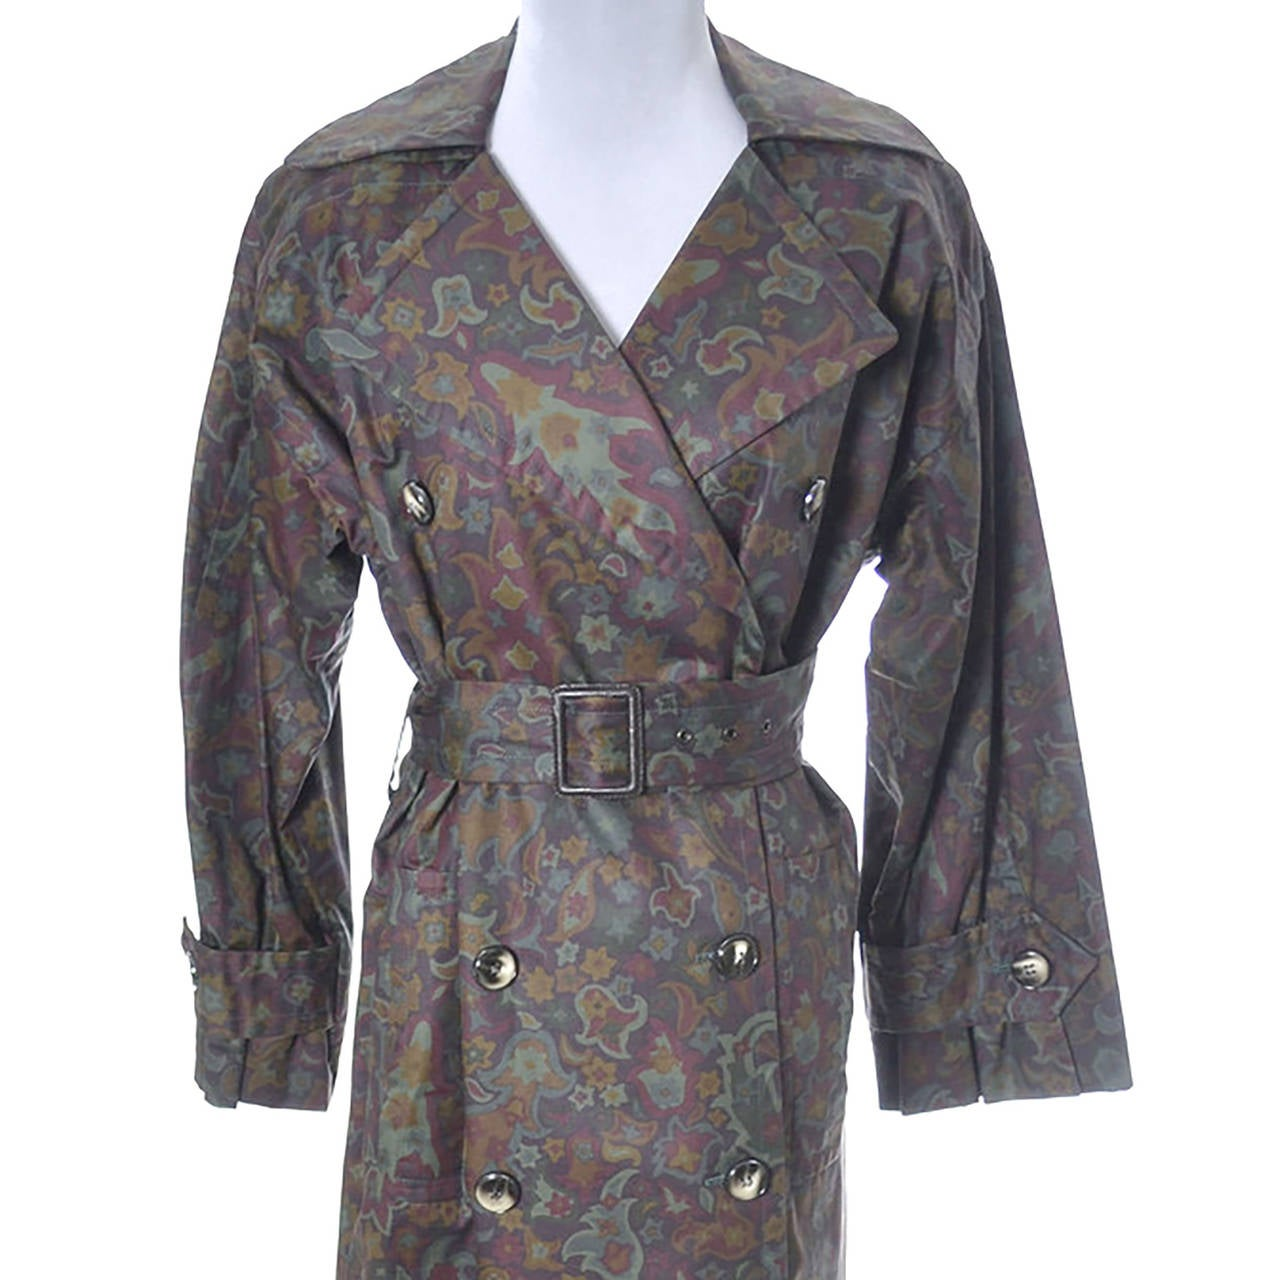 Yves Saint Laurent Rive Gauche Vintage YSL Raincoat Floral Pattern Trench Coat In Excellent Condition For Sale In Portland, OR